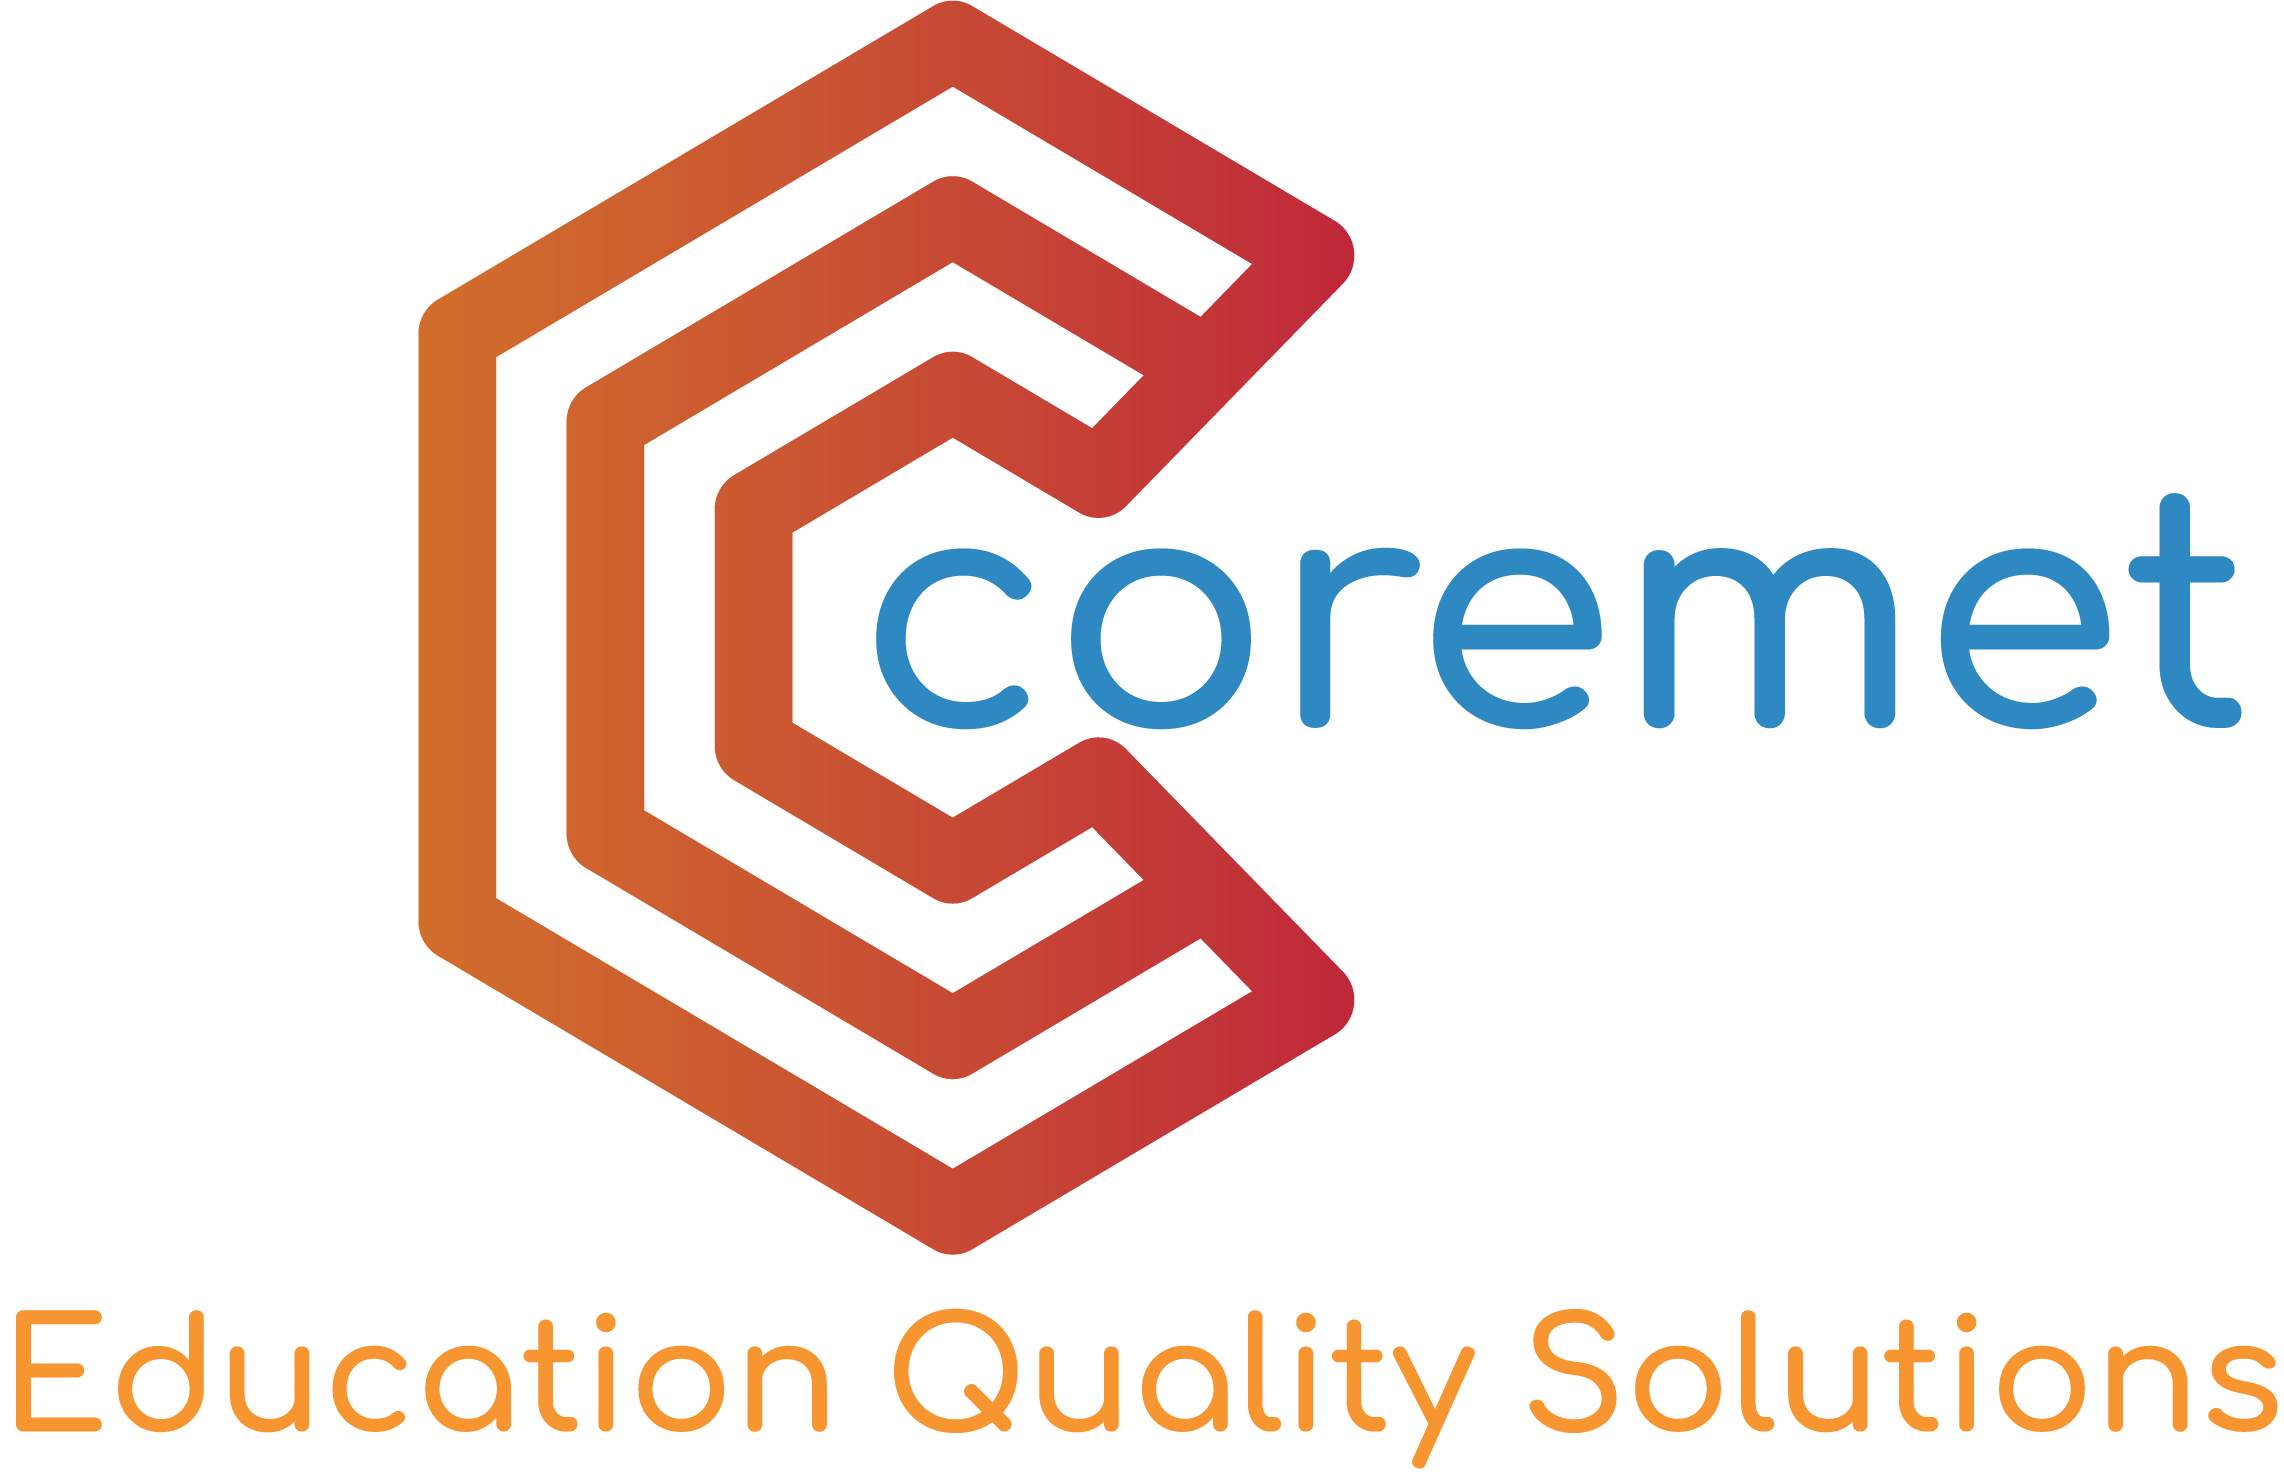 https://www.pakpositions.com/company/coremet-limited